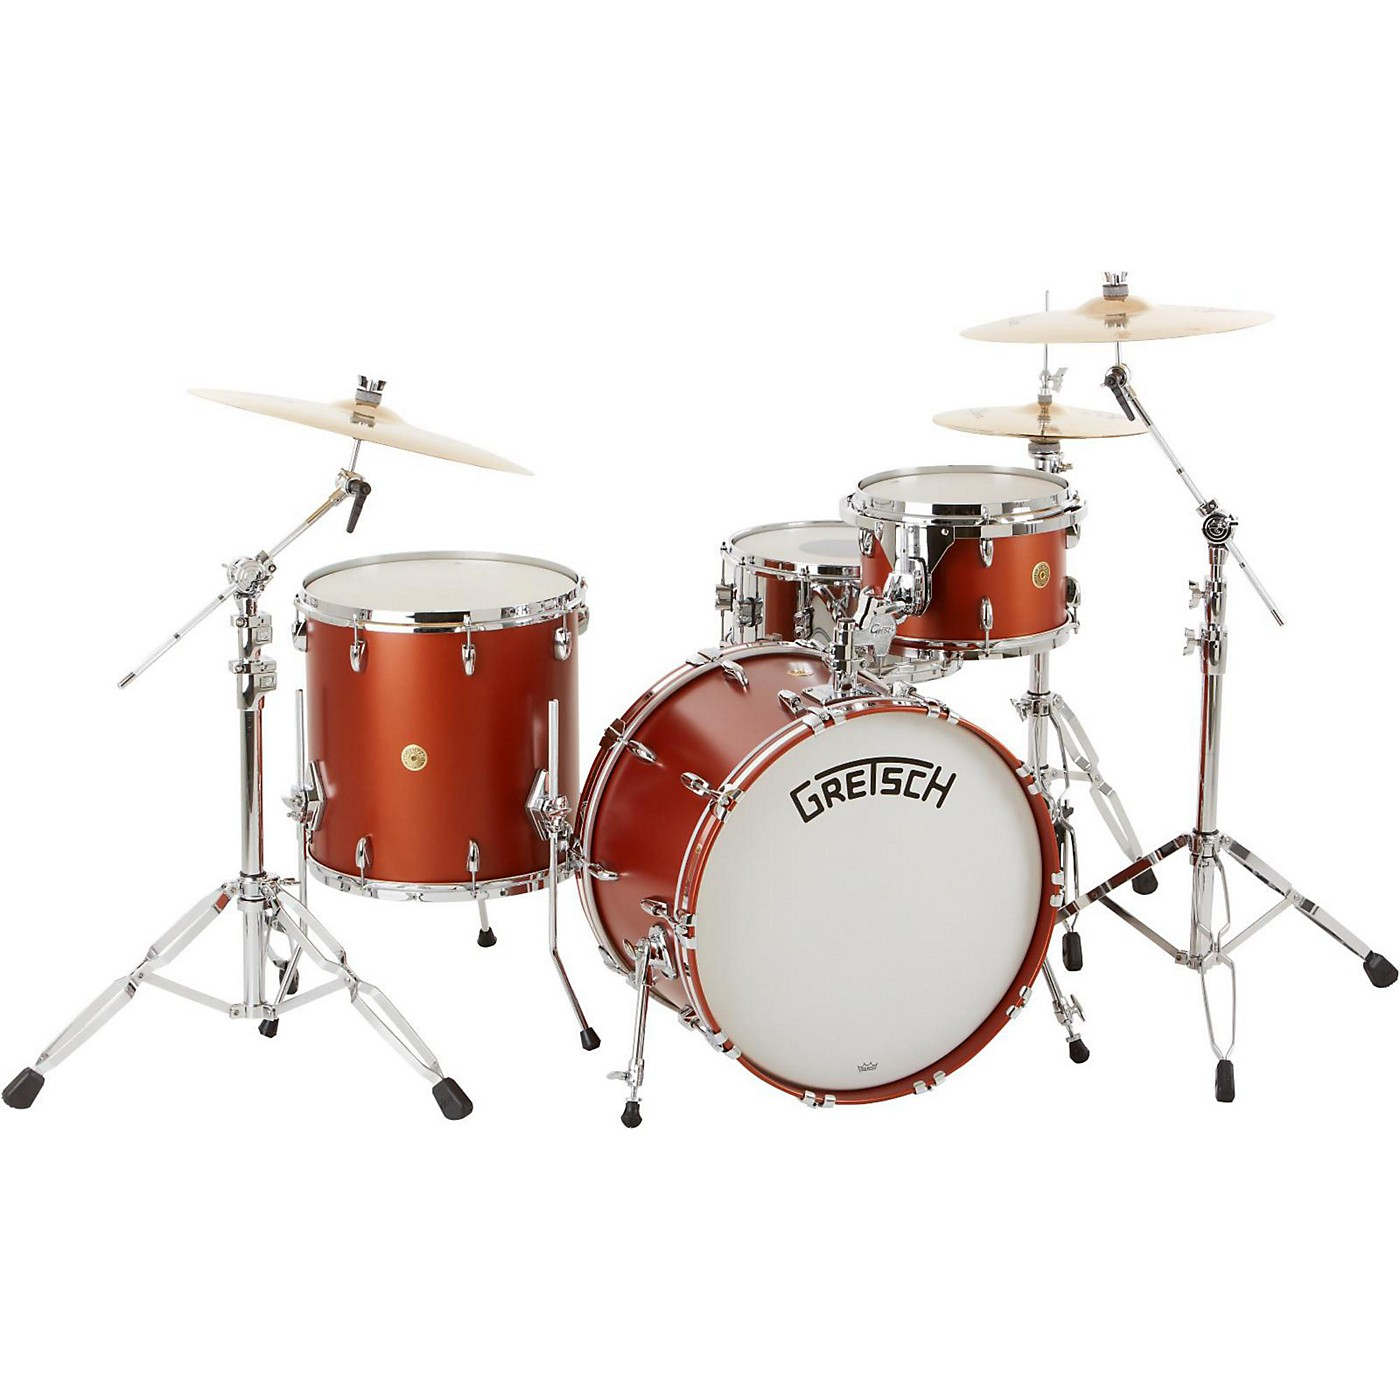 Gretsch Drums Broadkaster Series 3-Piece Shell Pack thumbnail